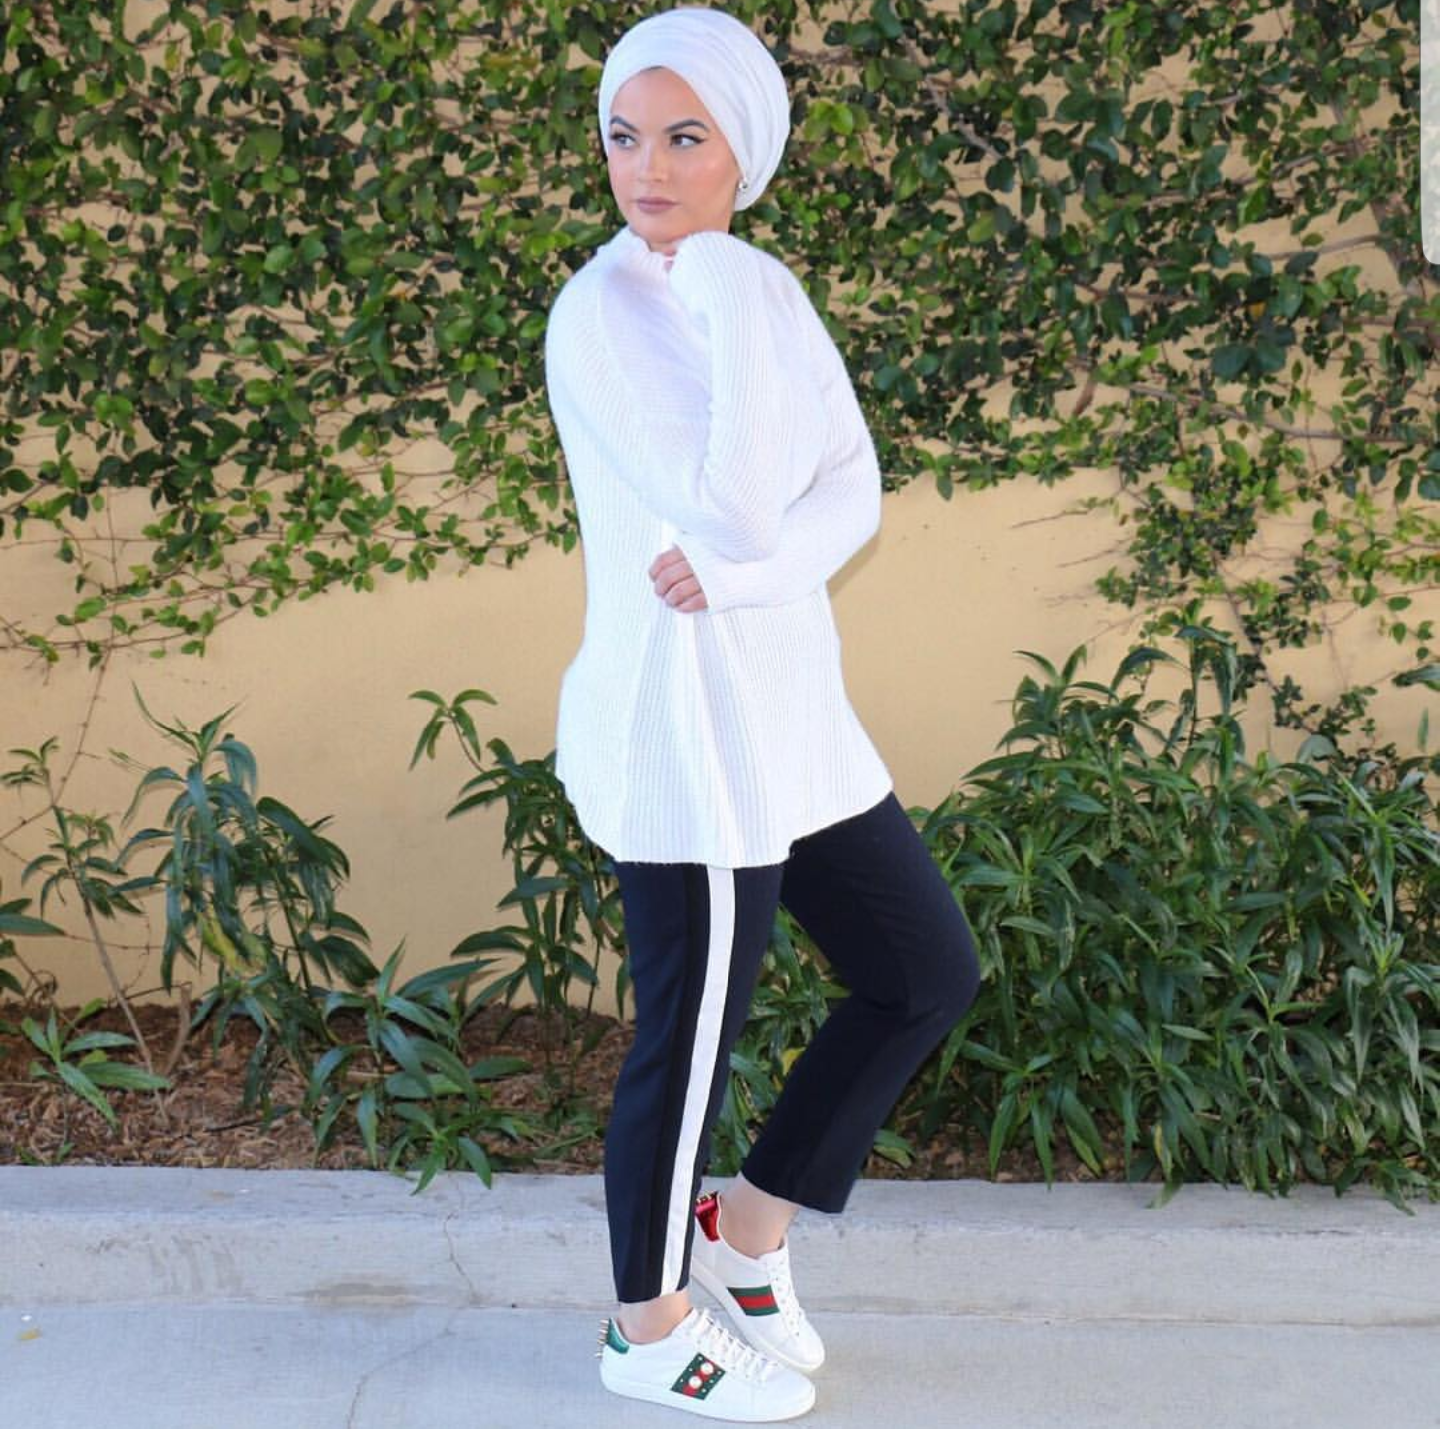 Modest Gym Outfits For Women That You Need To See